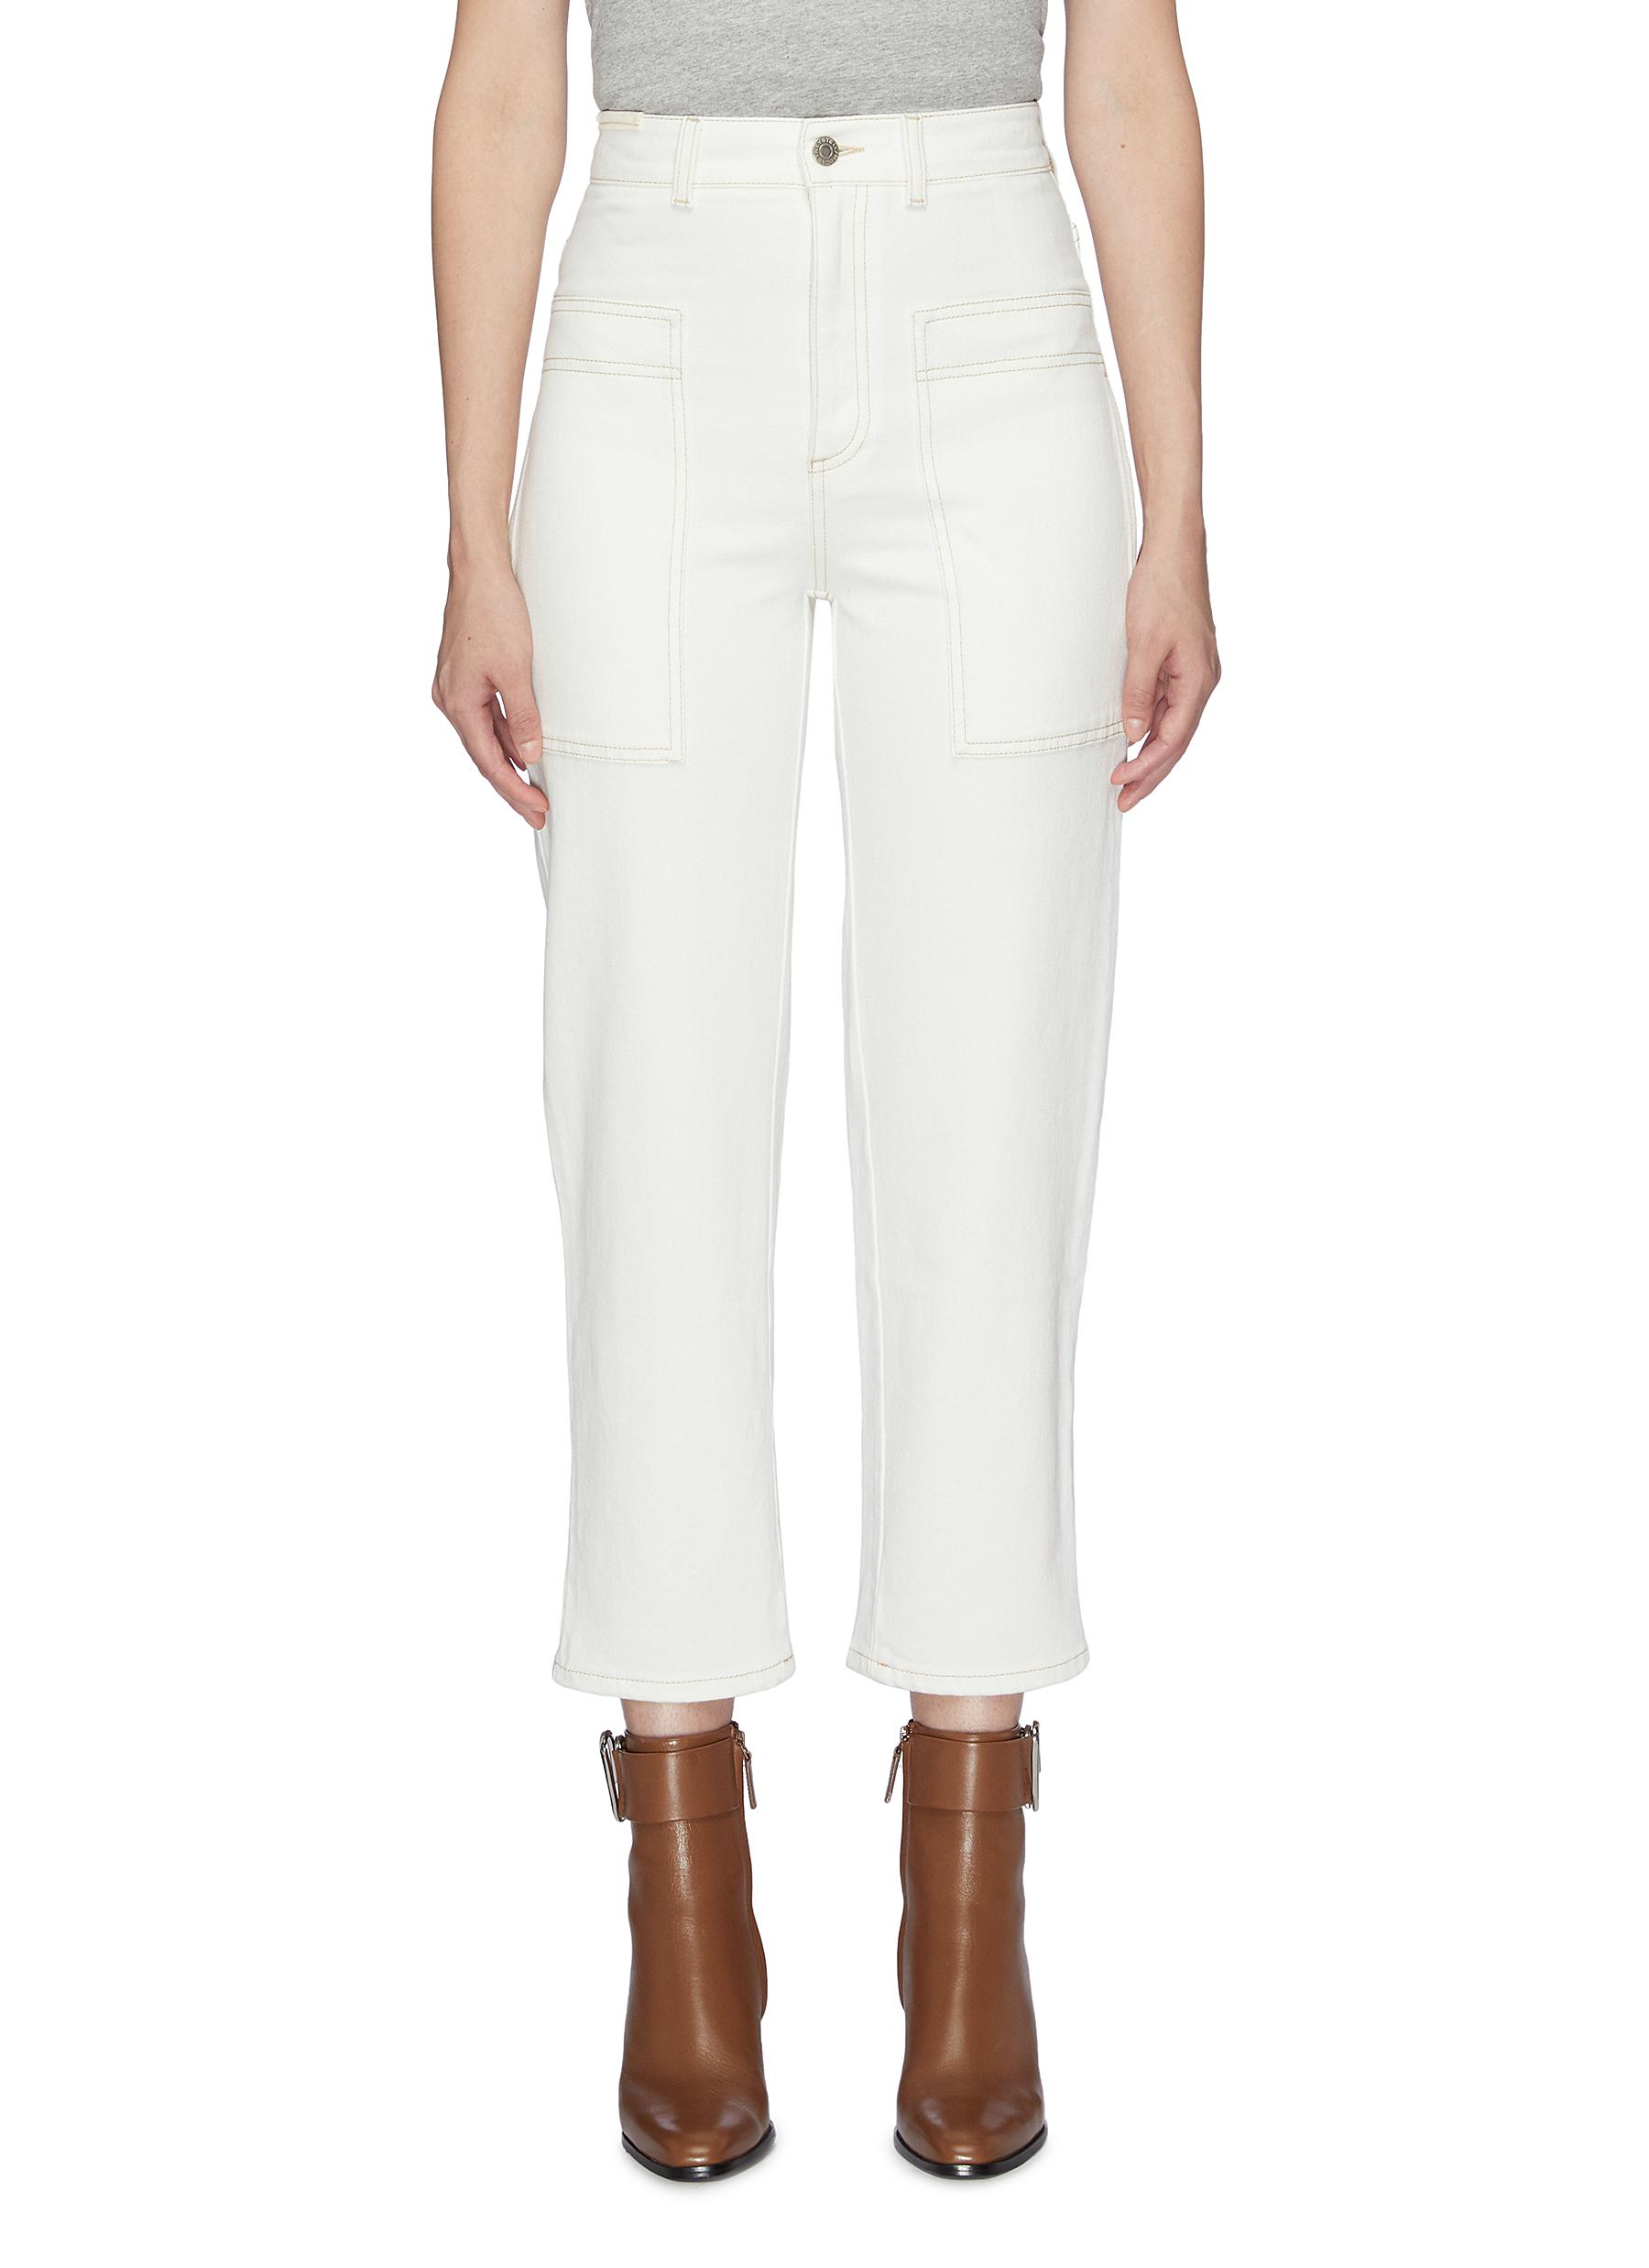 Contrast topstitching wide leg jeans by Stella Mccartney